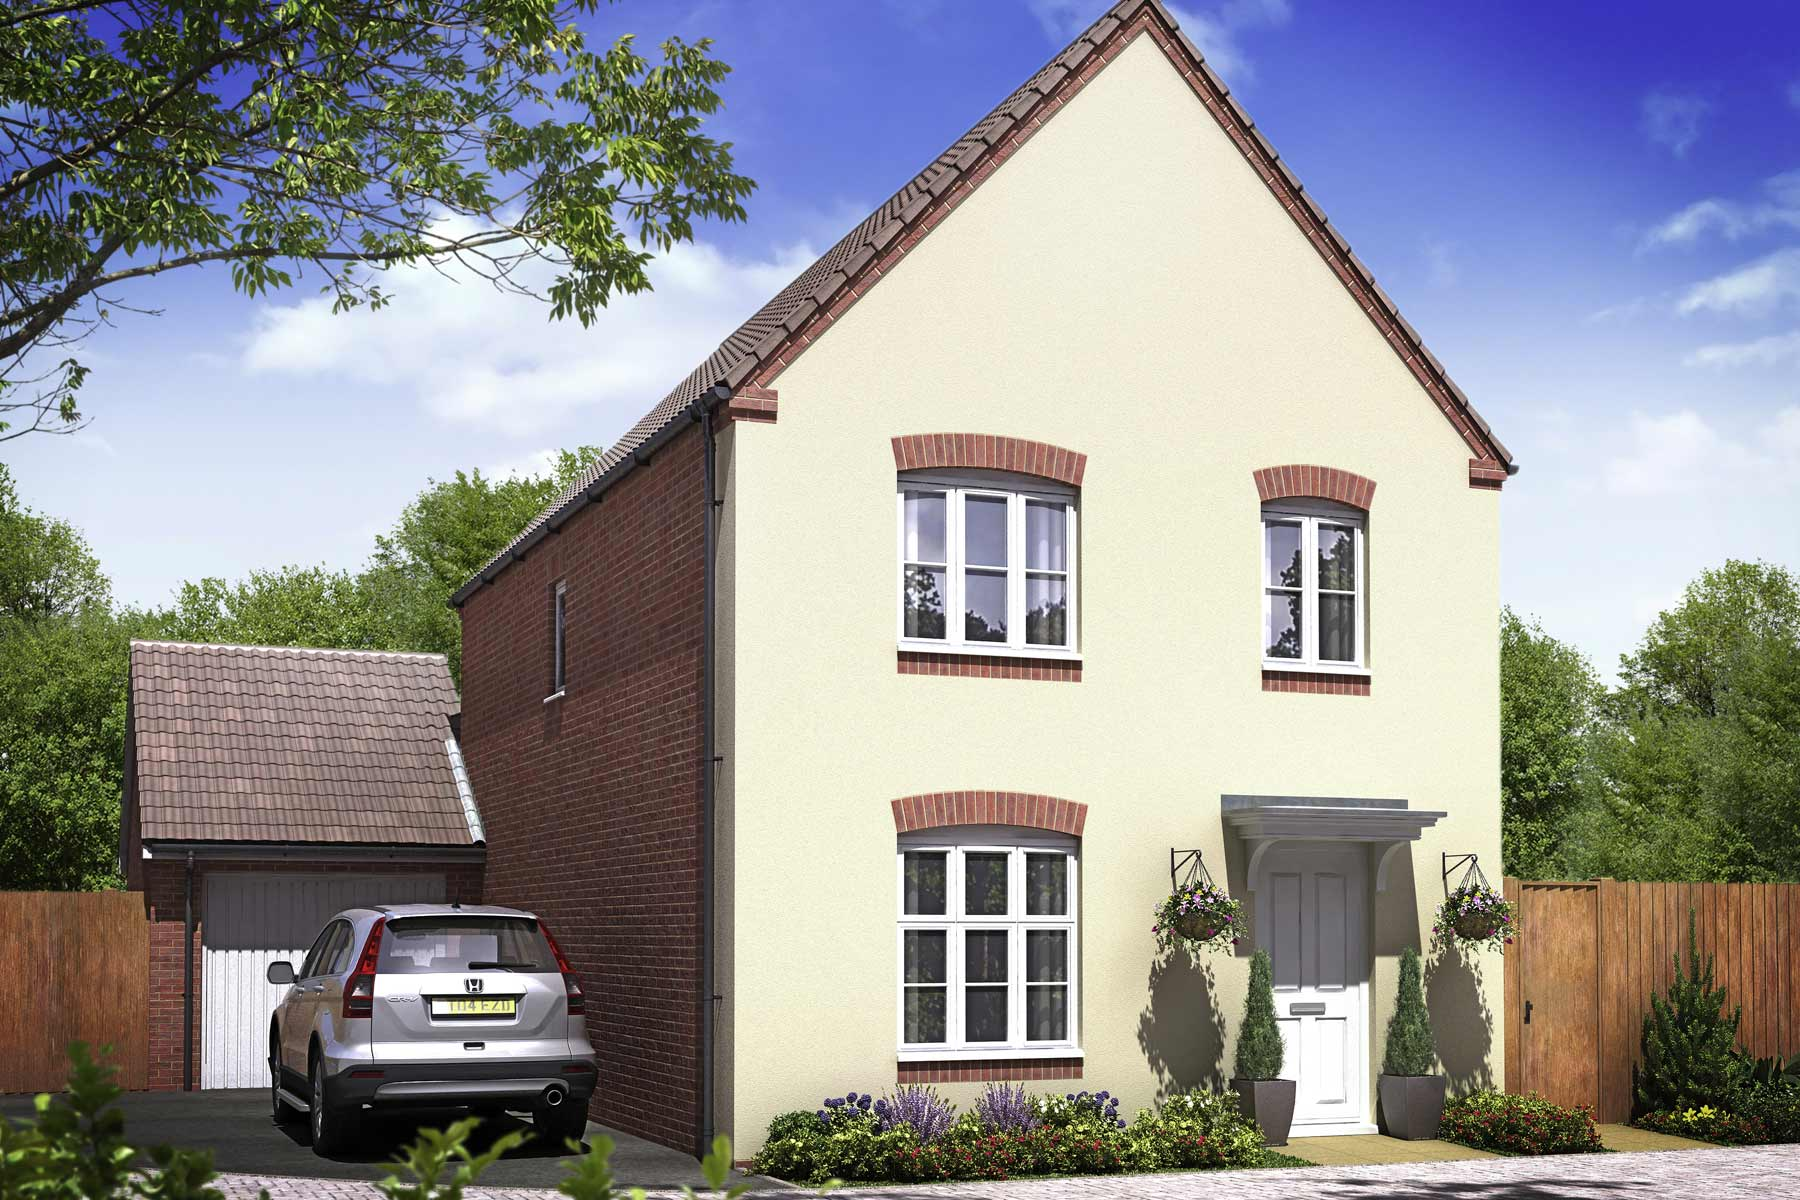 Artists impression of a typical Granforth home